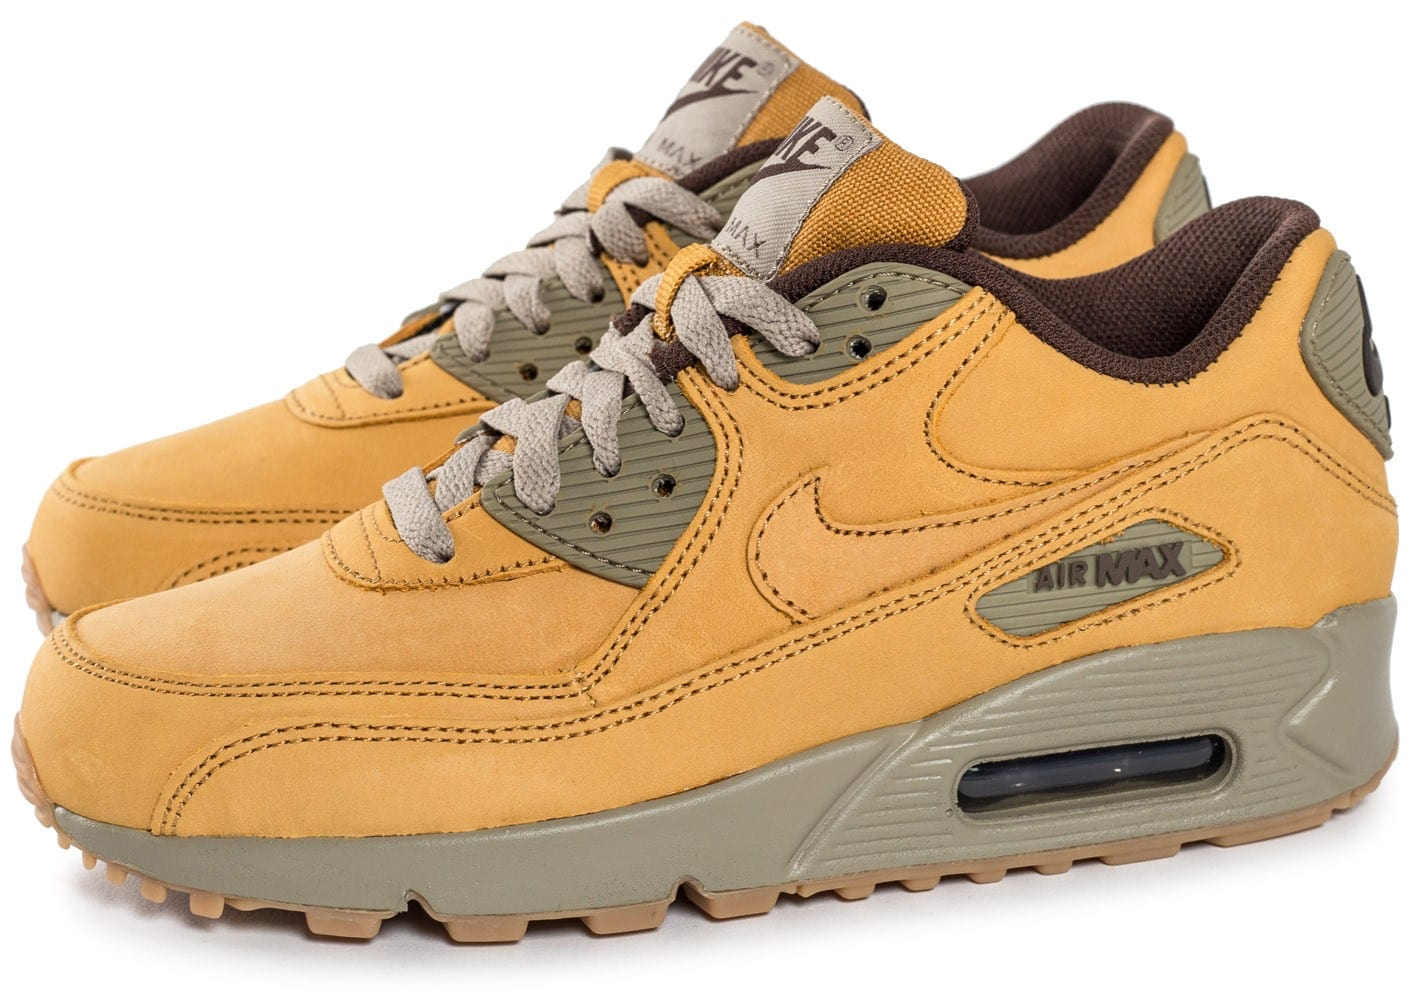 Wheat 90 Chaussures Winter Premium Baskets Nike Air Max Femme wOZiuPXkT